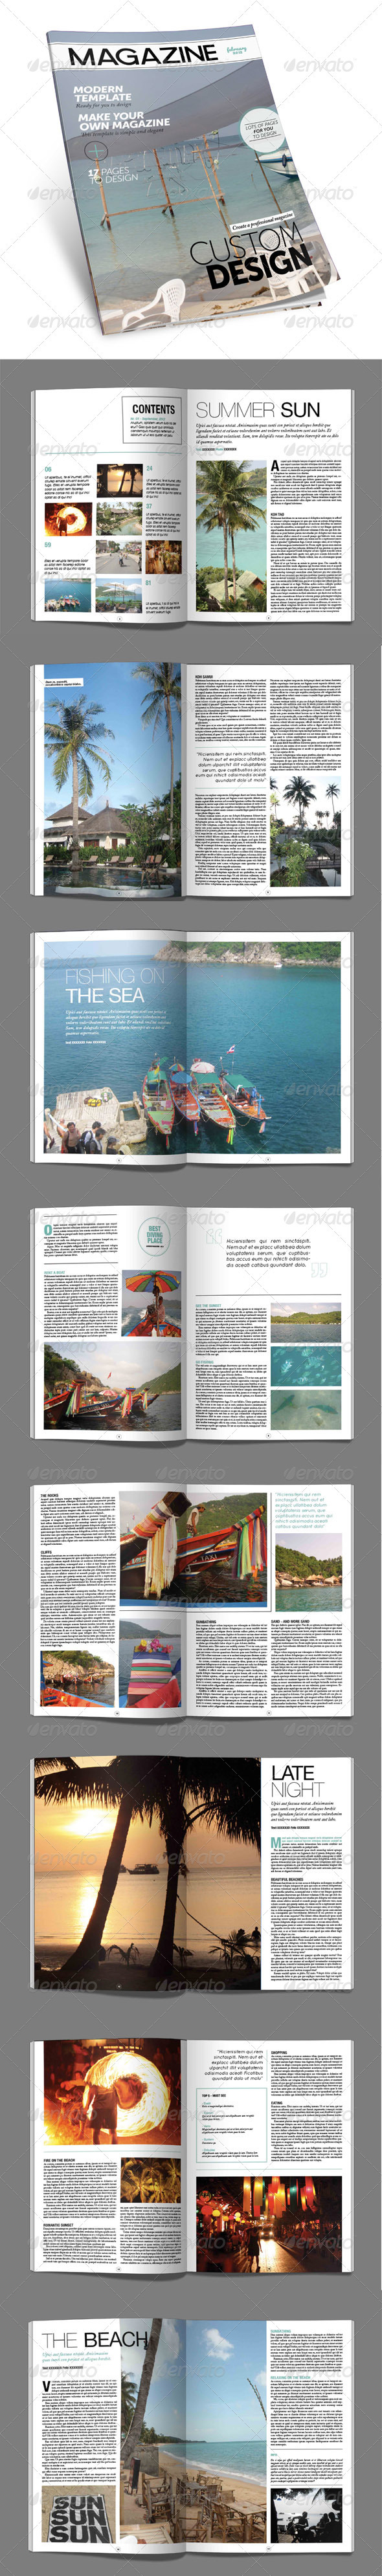 Blue Monkey Media - Magazine Template - Magazines Print Templates